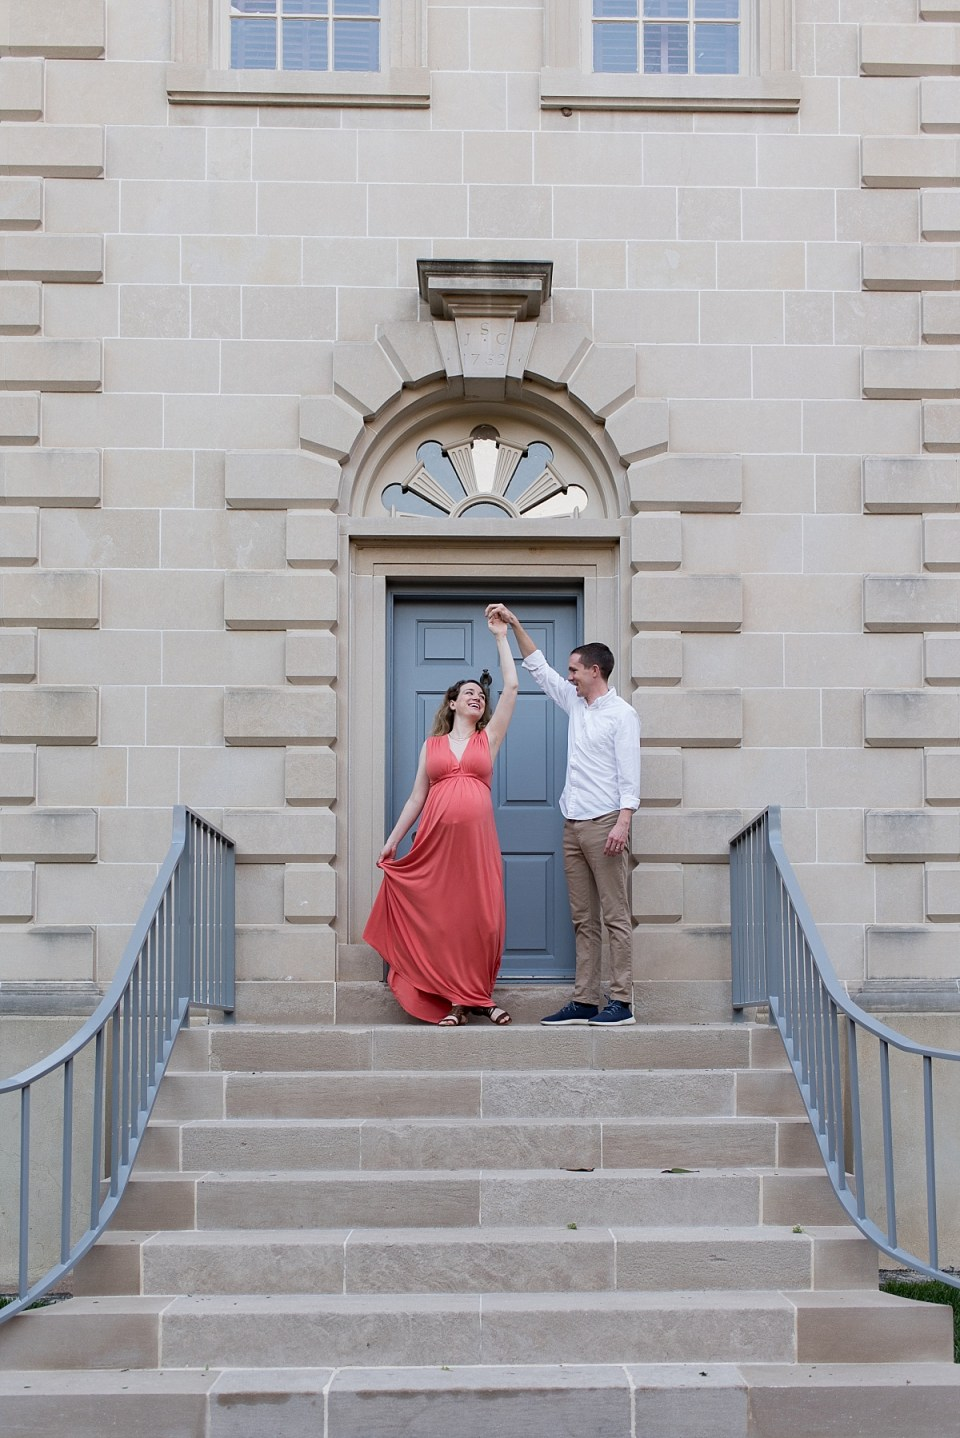 Carlyle Hosue Maternity Session in Old Town Alexandria by Alexandria Maternity Photographer, Erin Tetterton Photography